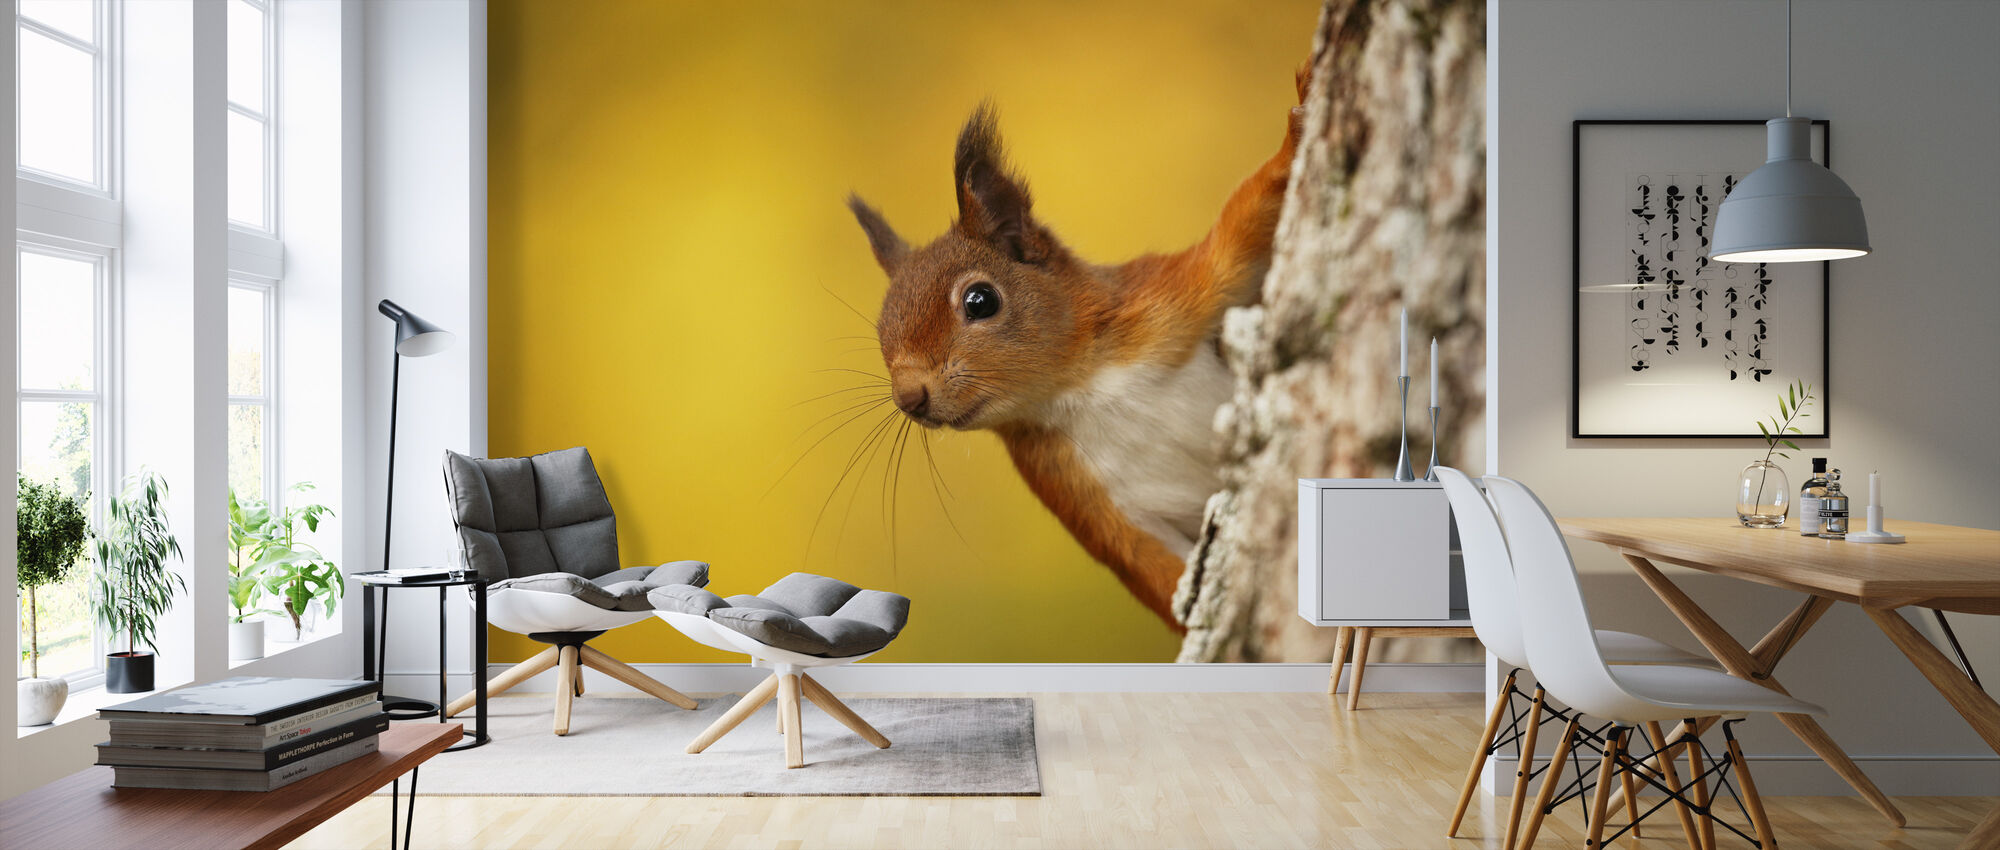 Red Squirrel with Autumn Colors - Wallpaper - Living Room